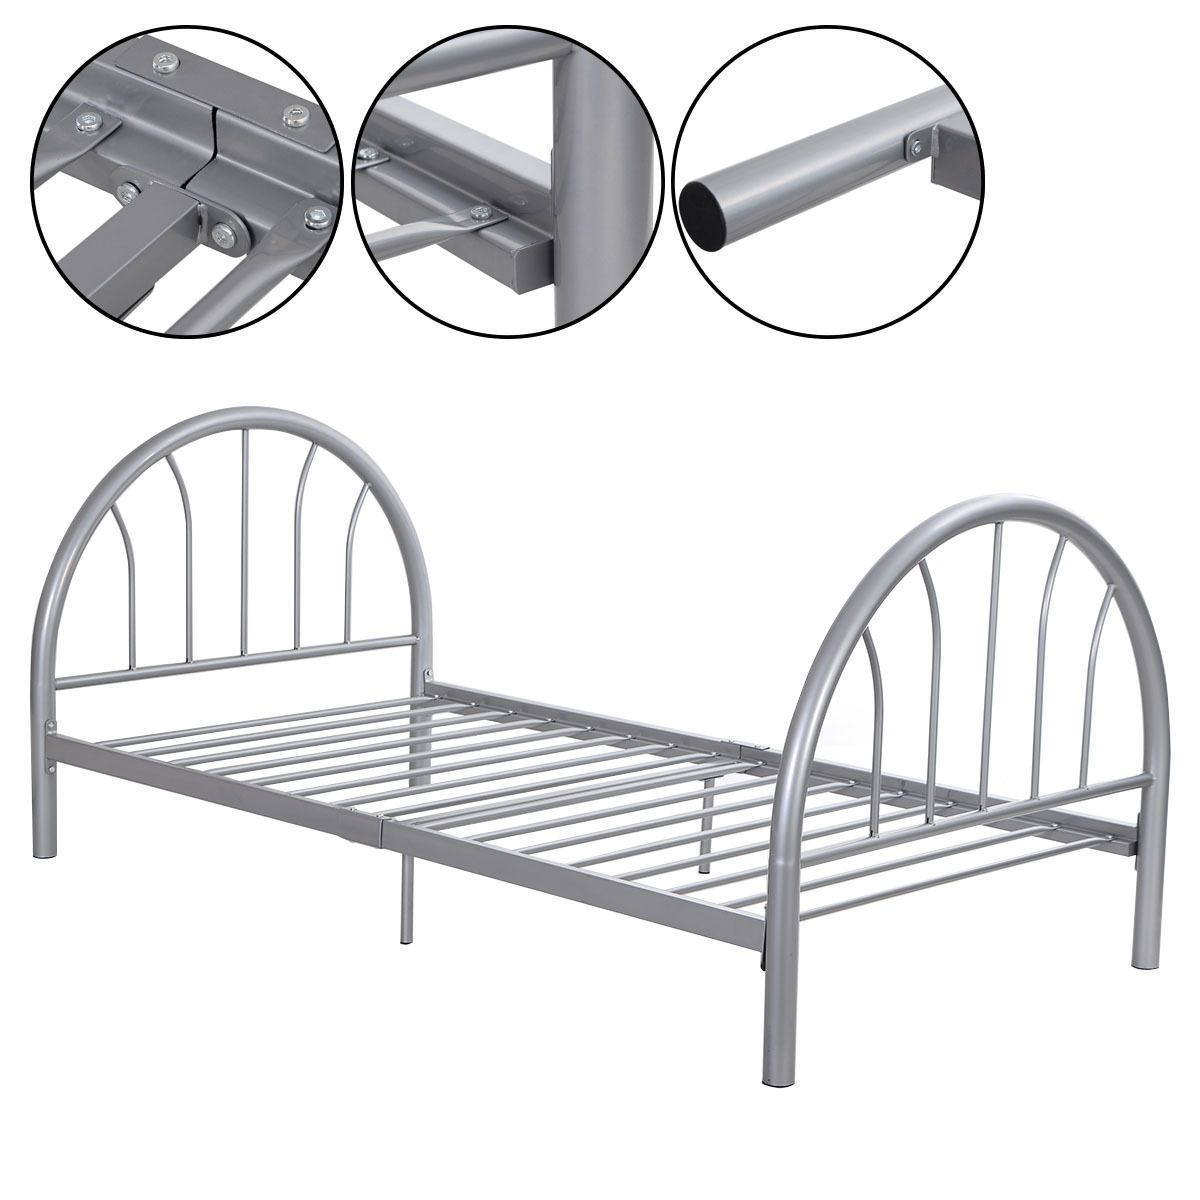 The Sliver Steel Bed Frame This Folding Bed Base Is A Good Choice If You Need Some Extra Under The Bad St Metal Bed Frame Twin Size Metal Bed Frame Metal